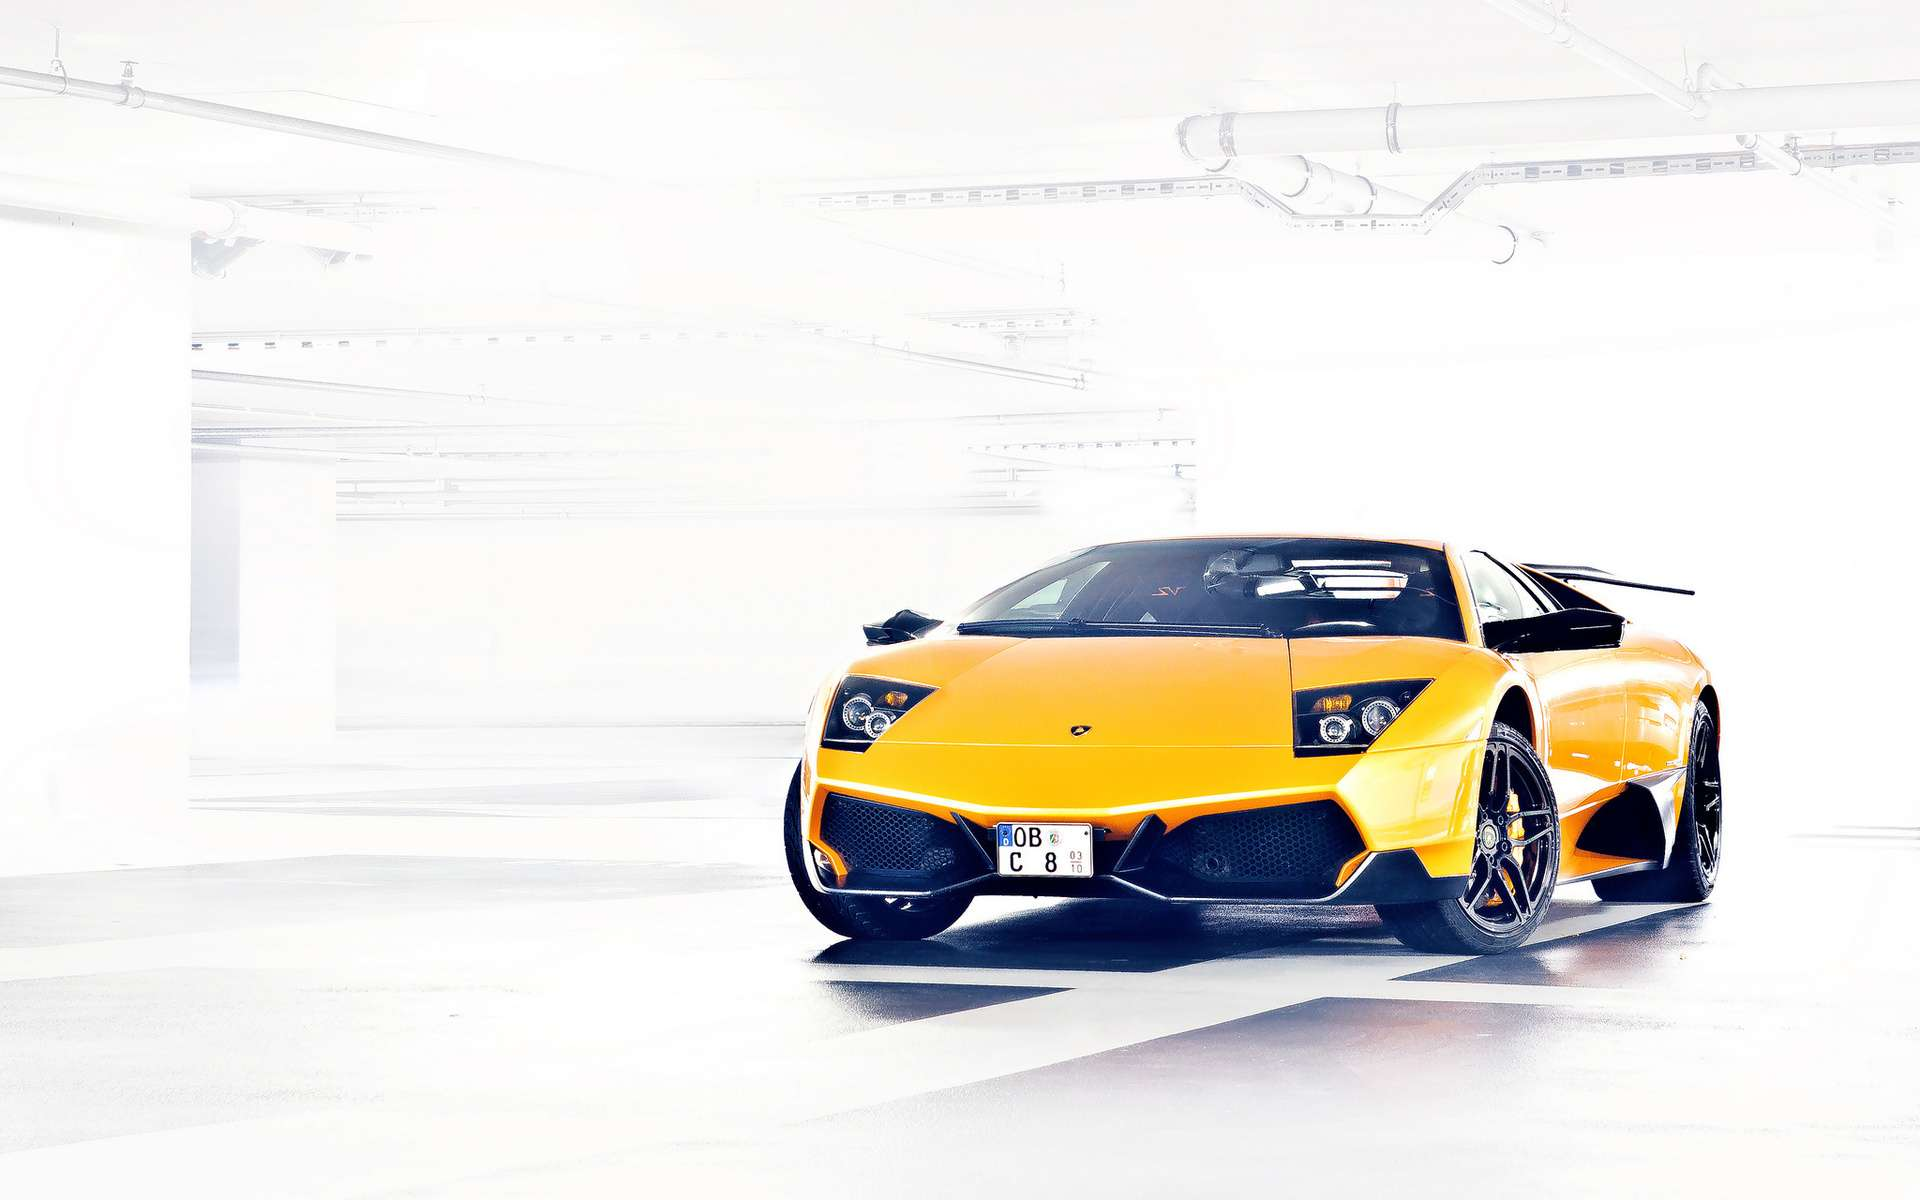 Vehicles - Lamborghini  932010